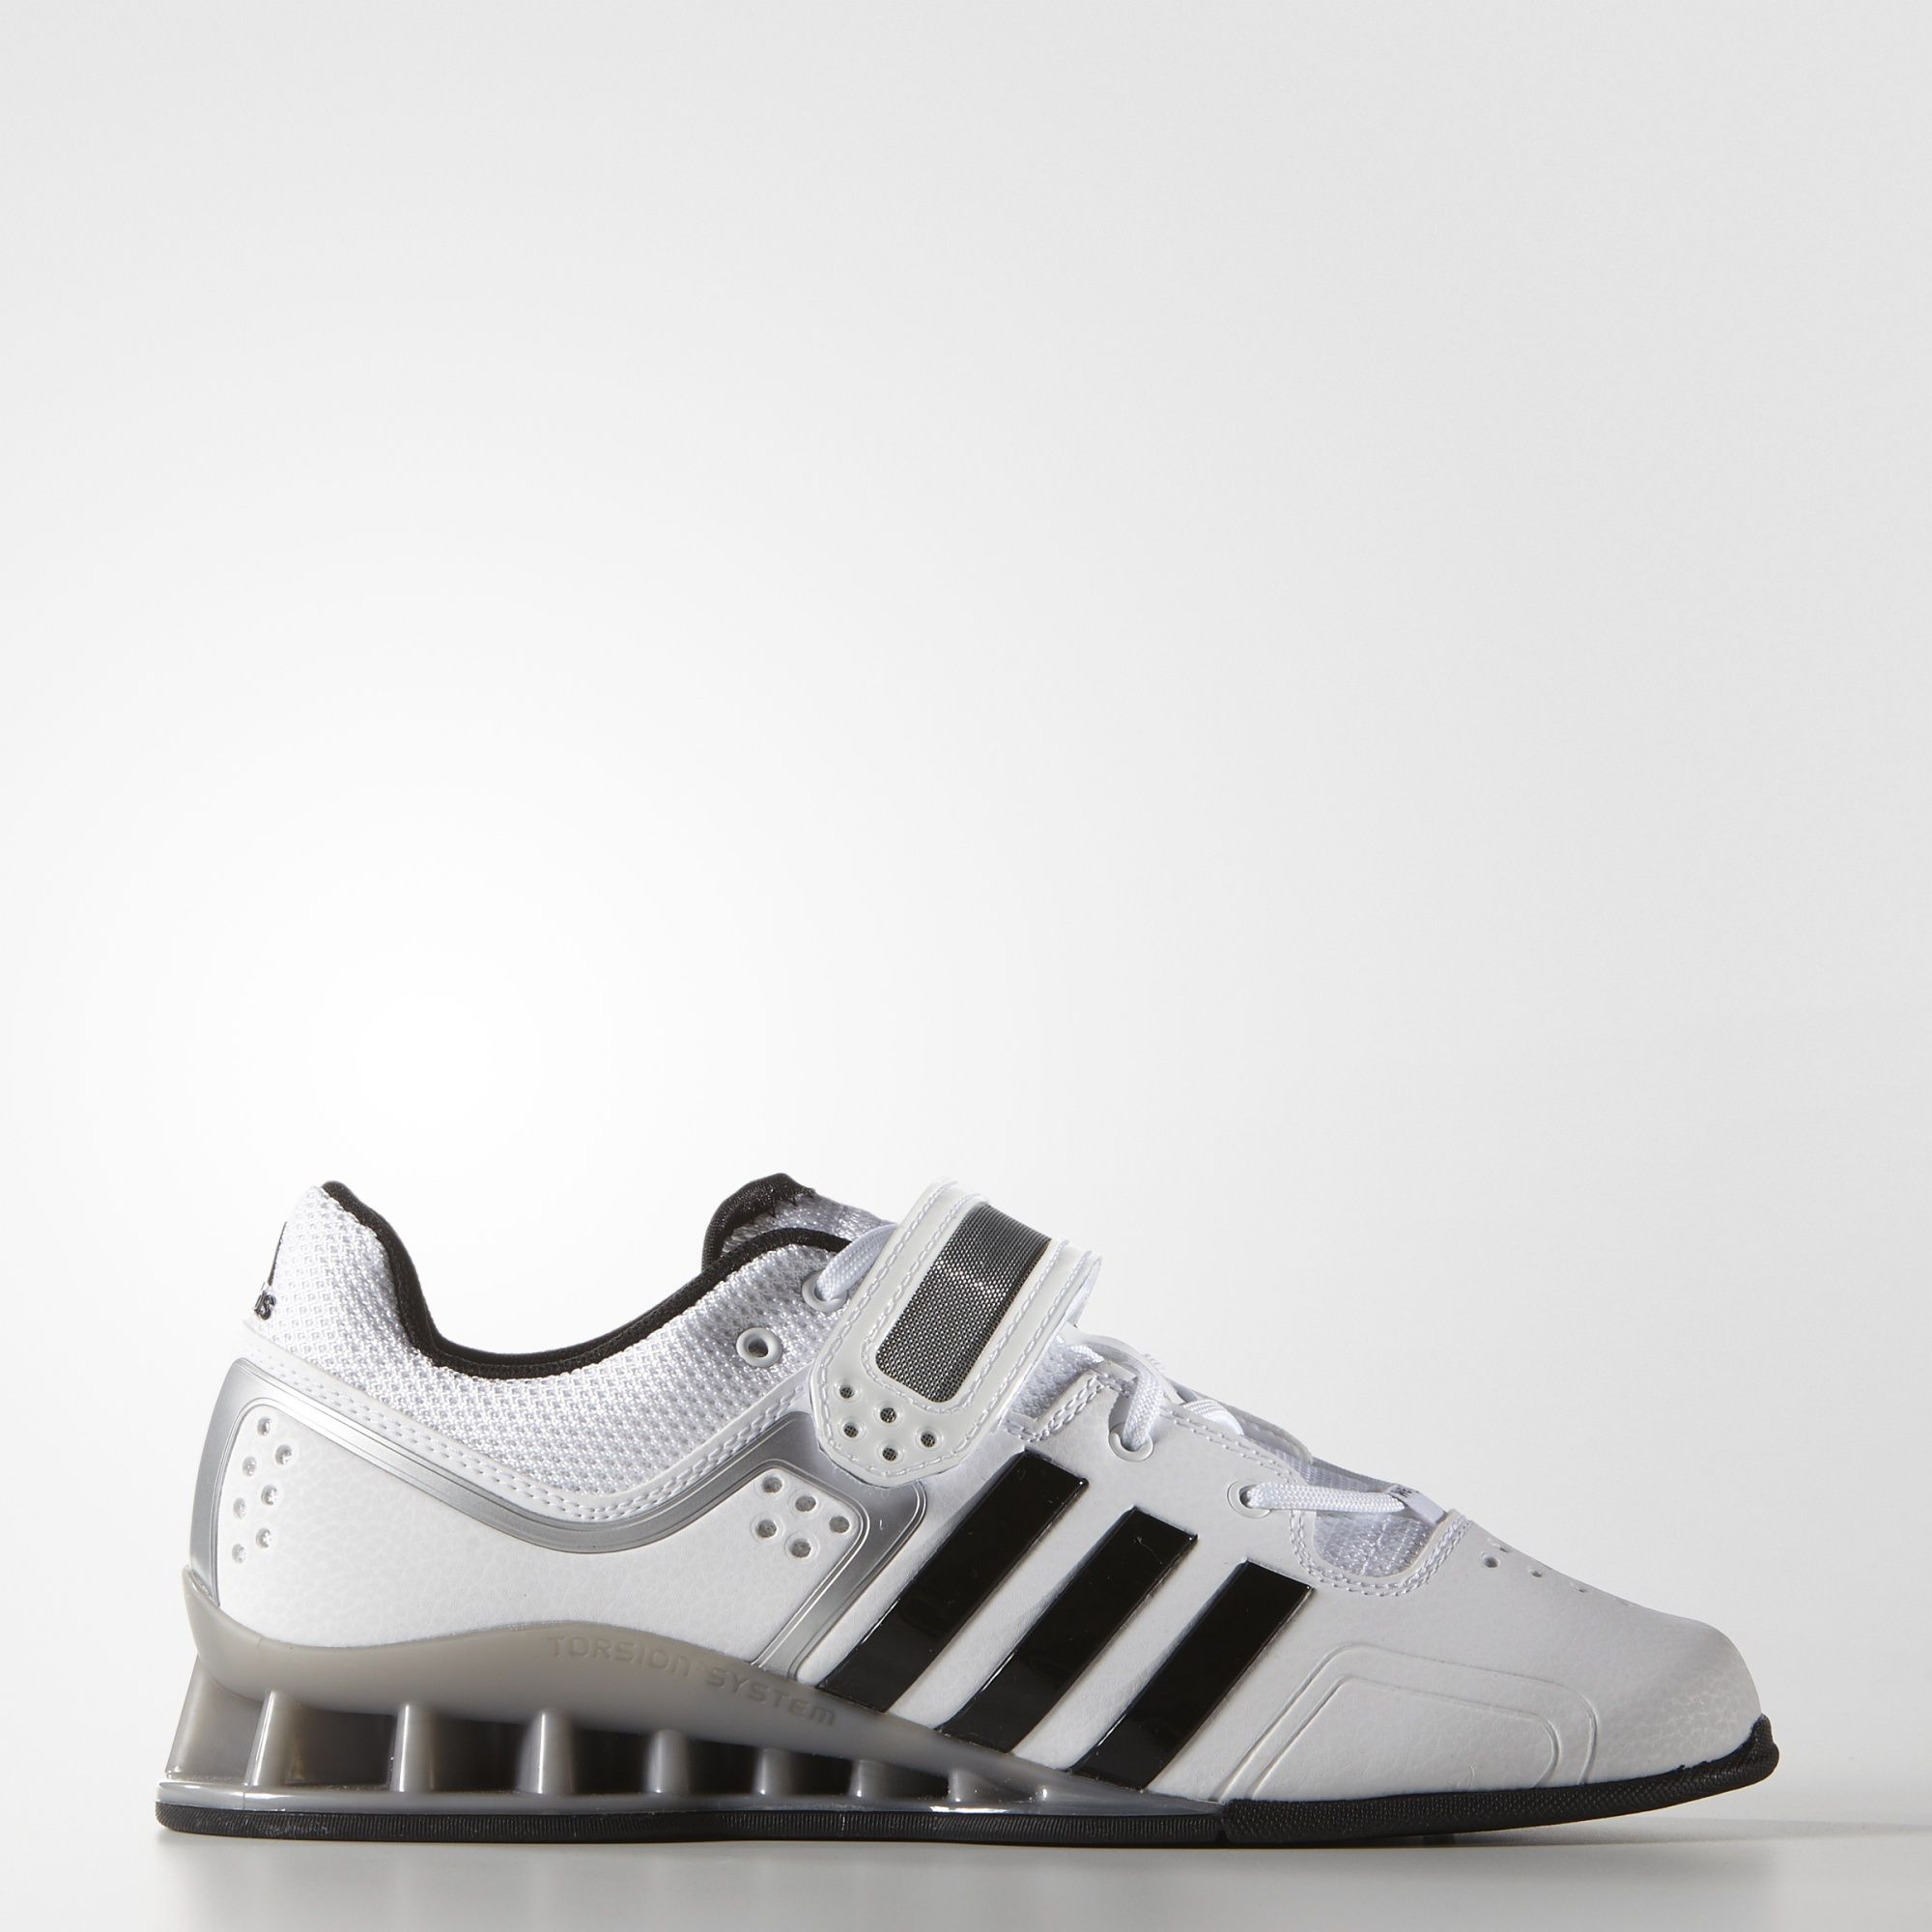 adidasca adidas olympic weightlifting shoes adipowers 84 power